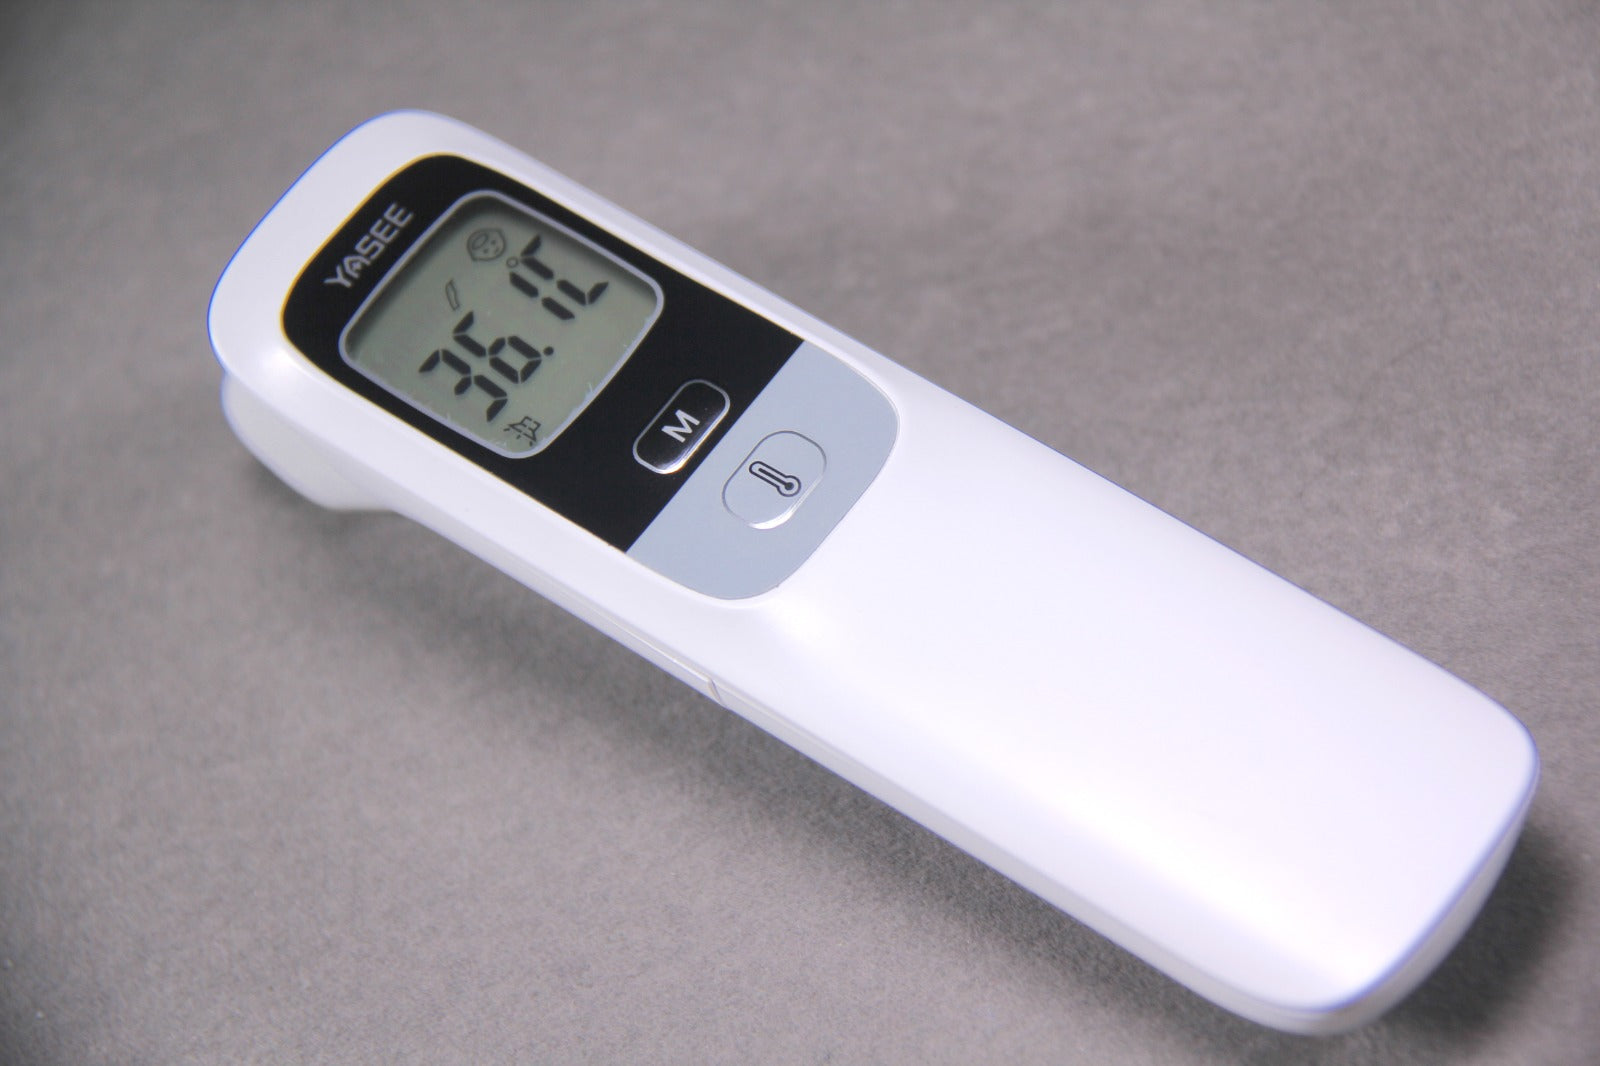 digital thermometer body infrared thermometer generalsmile.com